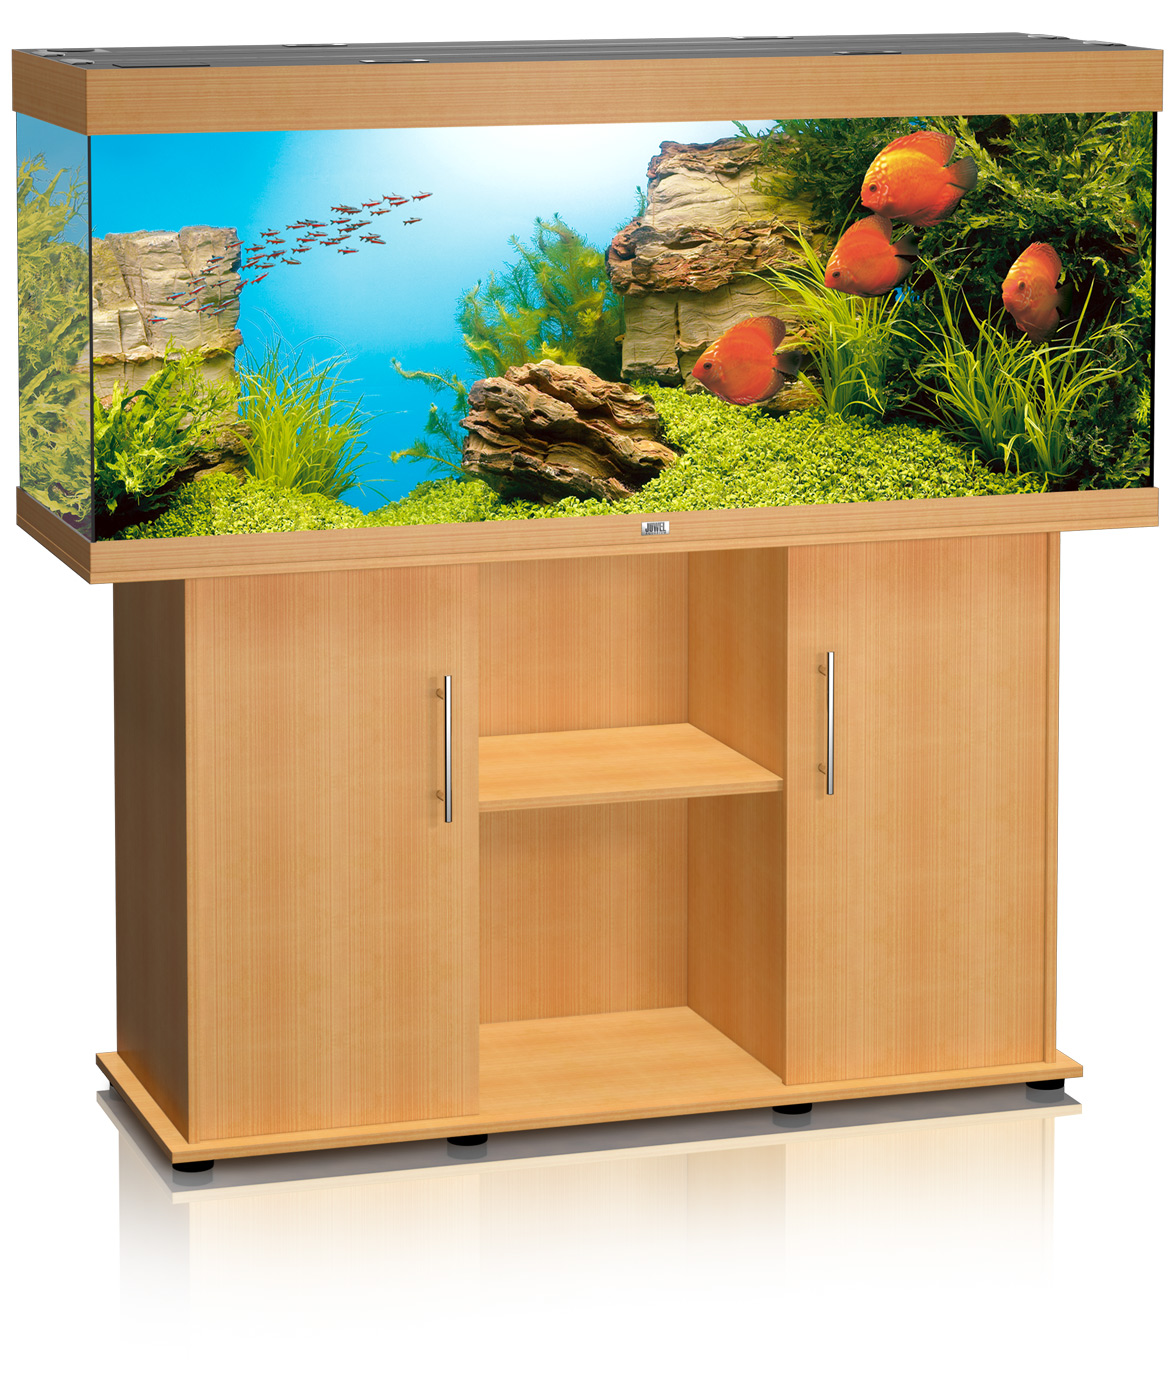 Juwel rio 450 aquarium and cabinet for Meuble aquarium 120 cm